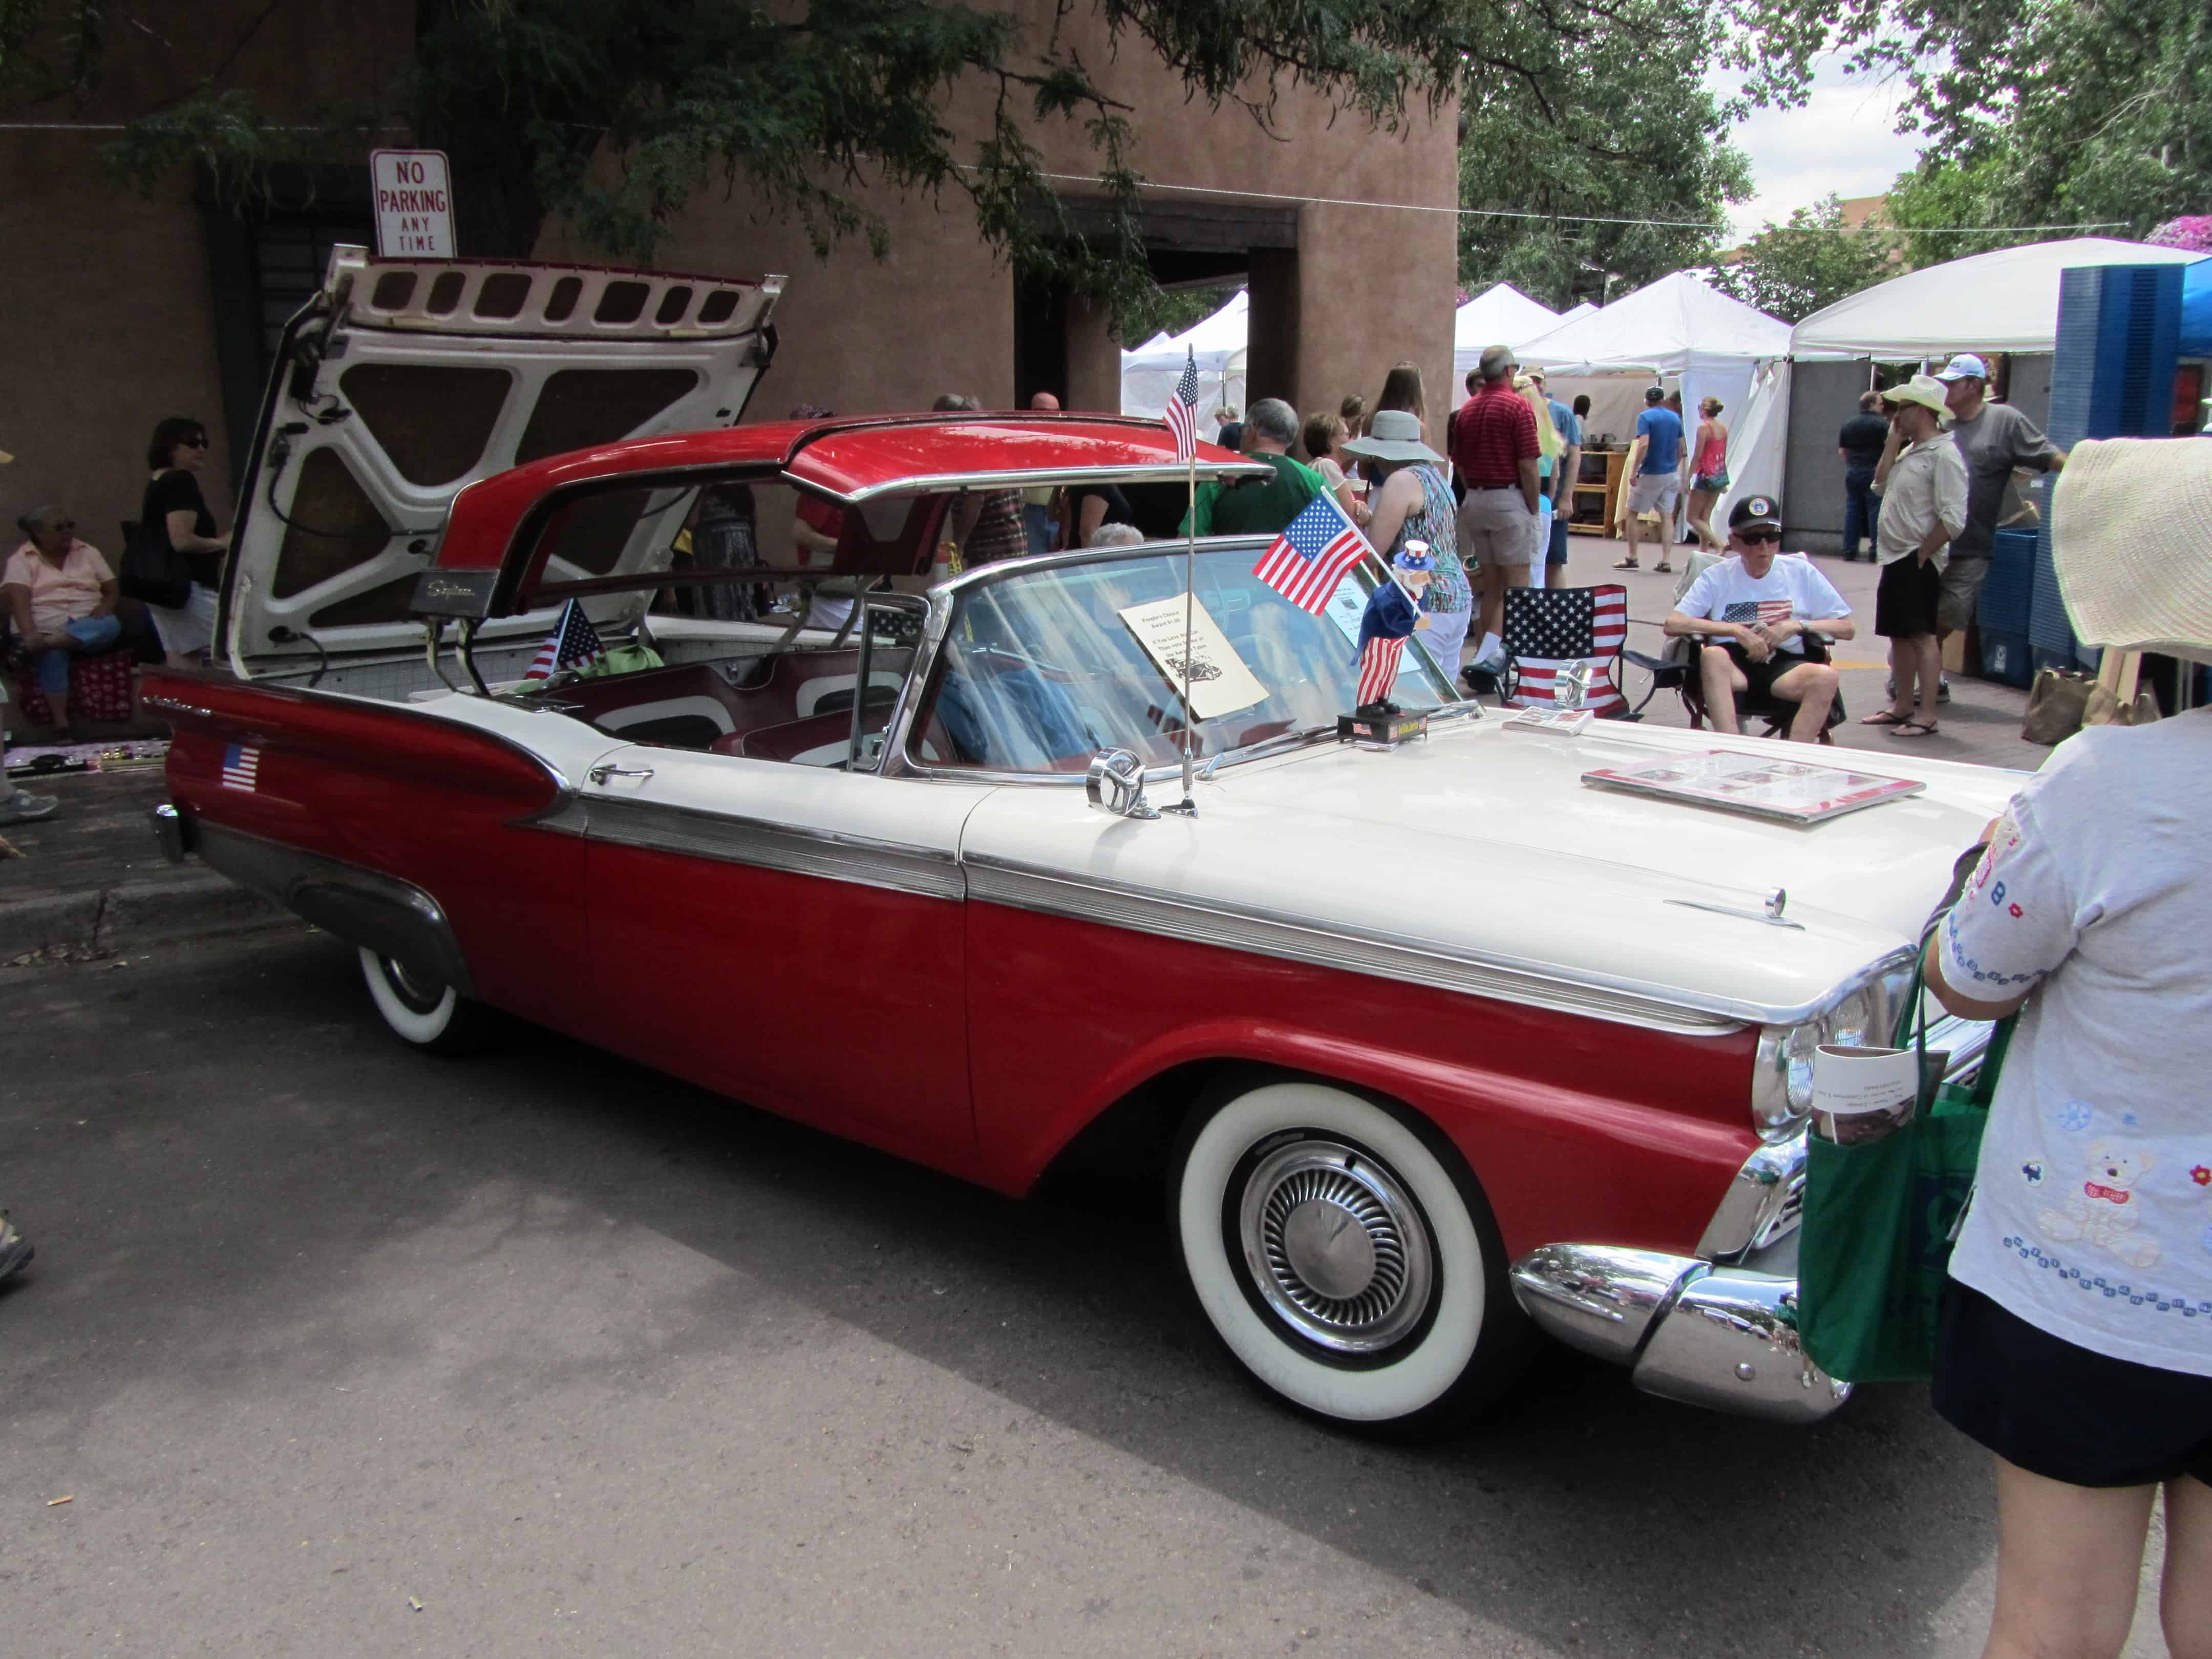 Fourth of July, Santa Fe Style - The Musings of the Big Red Car